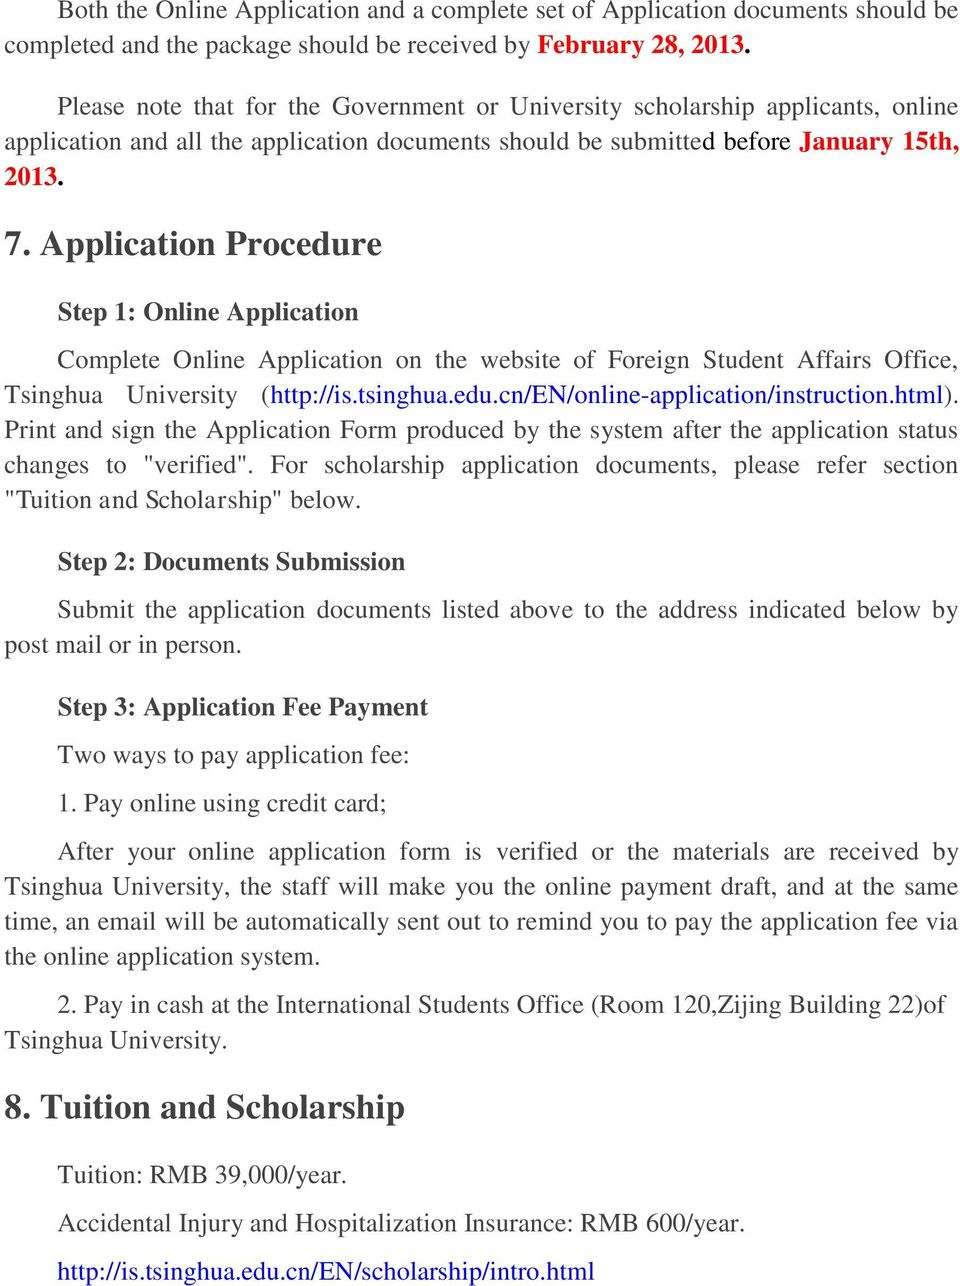 Application Procedure Step 1: Online Application Complete Online Application on the website of Foreign Student Affairs Office, Tsinghua University (http://is.tsinghua.edu.cn/en/online-application/instruction.